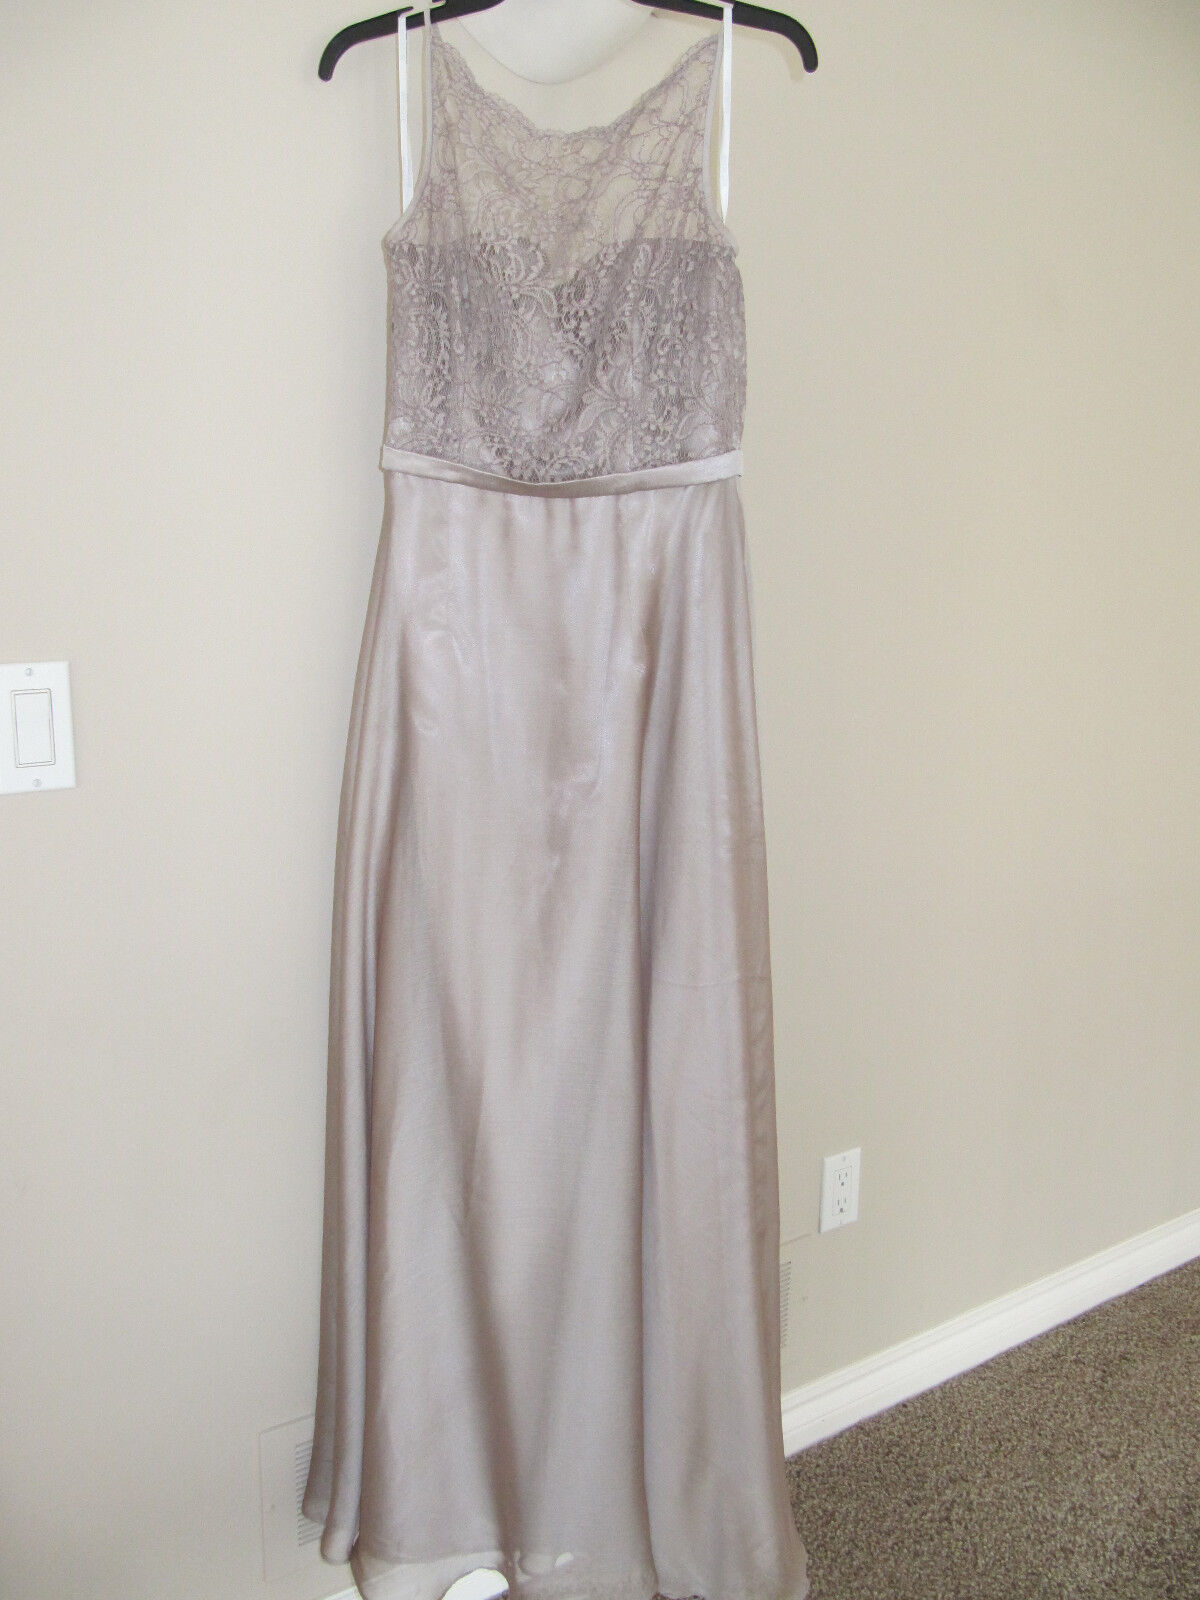 Belsoie Bridesmaid Champagne/Taupe Lace Top Long Gown / Dress US Size 6